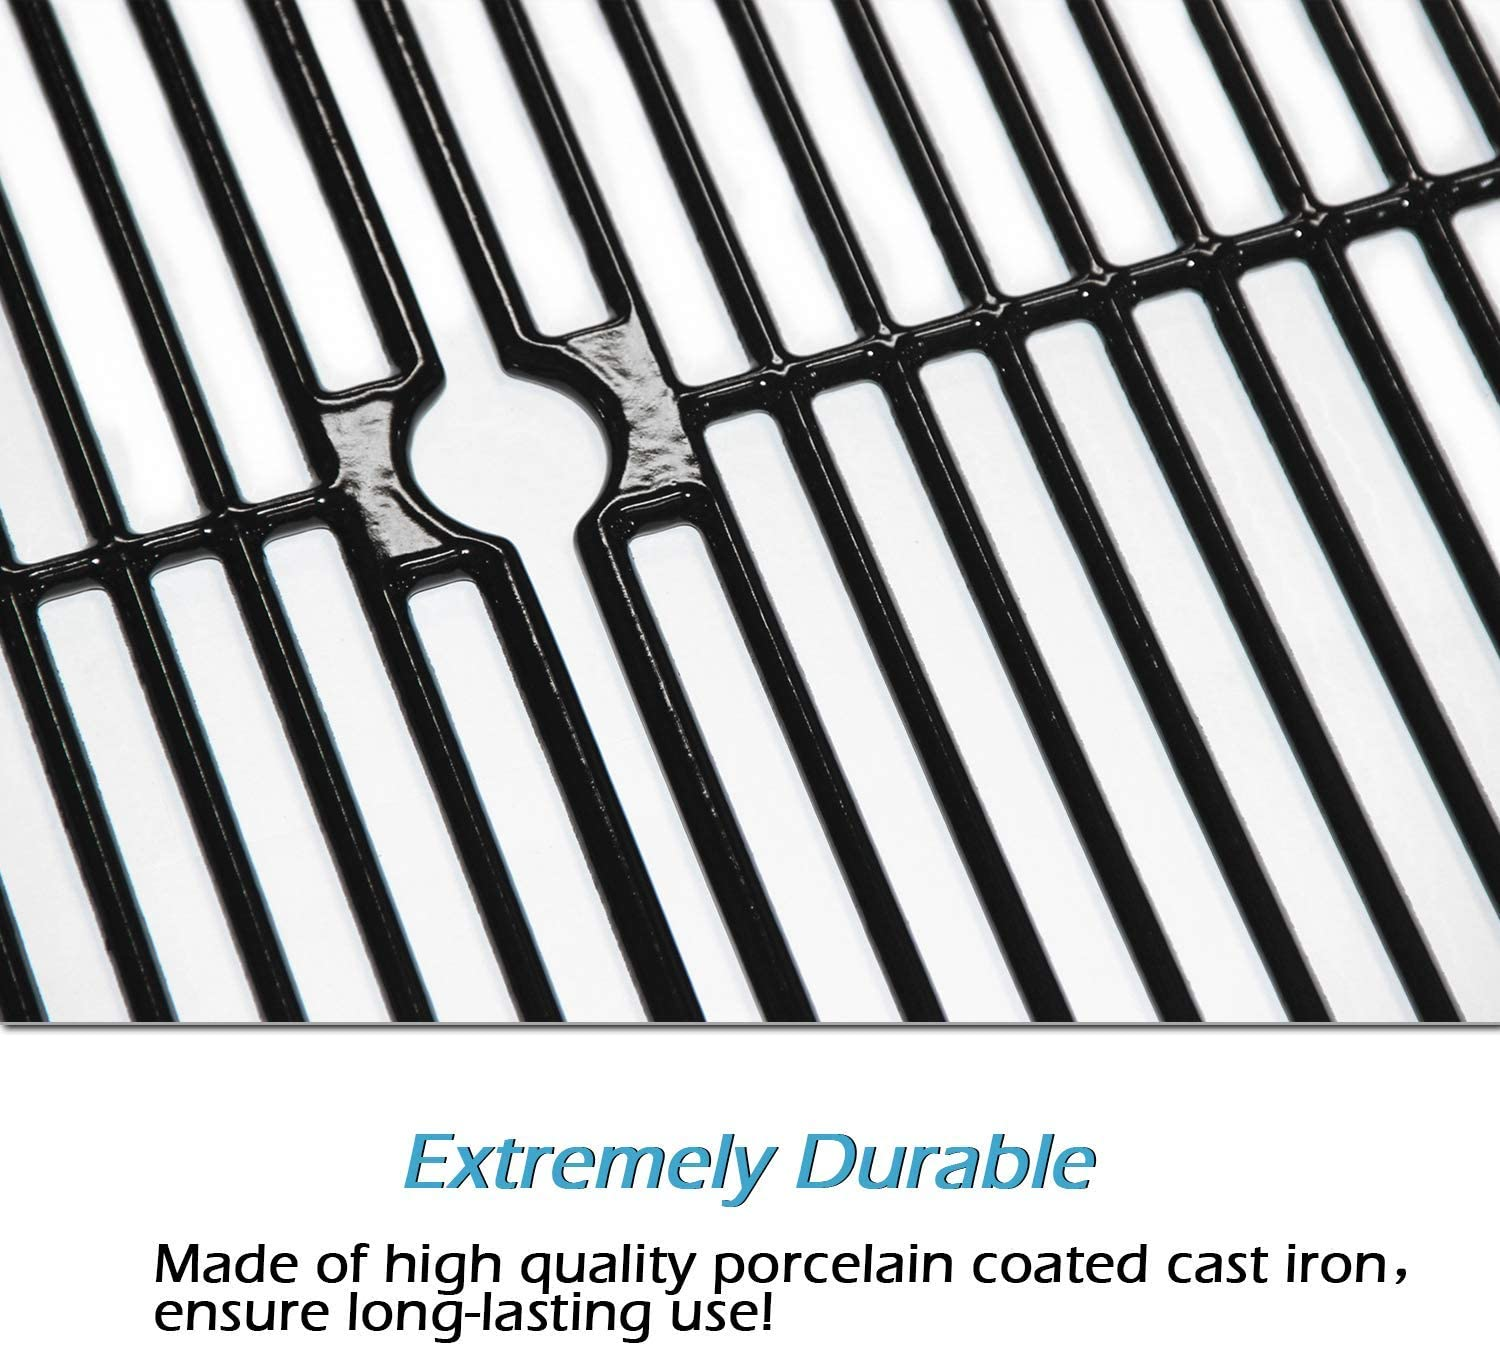 Cast Iron Cooking Grid Grates Replacement for Brinkmann 810-2410-S 810-8410-F 810-7490-F Votenli C6410C 810-2411-S 810-2511-S 810-2411-F 810-8410-S 810-8411-5 3-Pack 810-4557-0